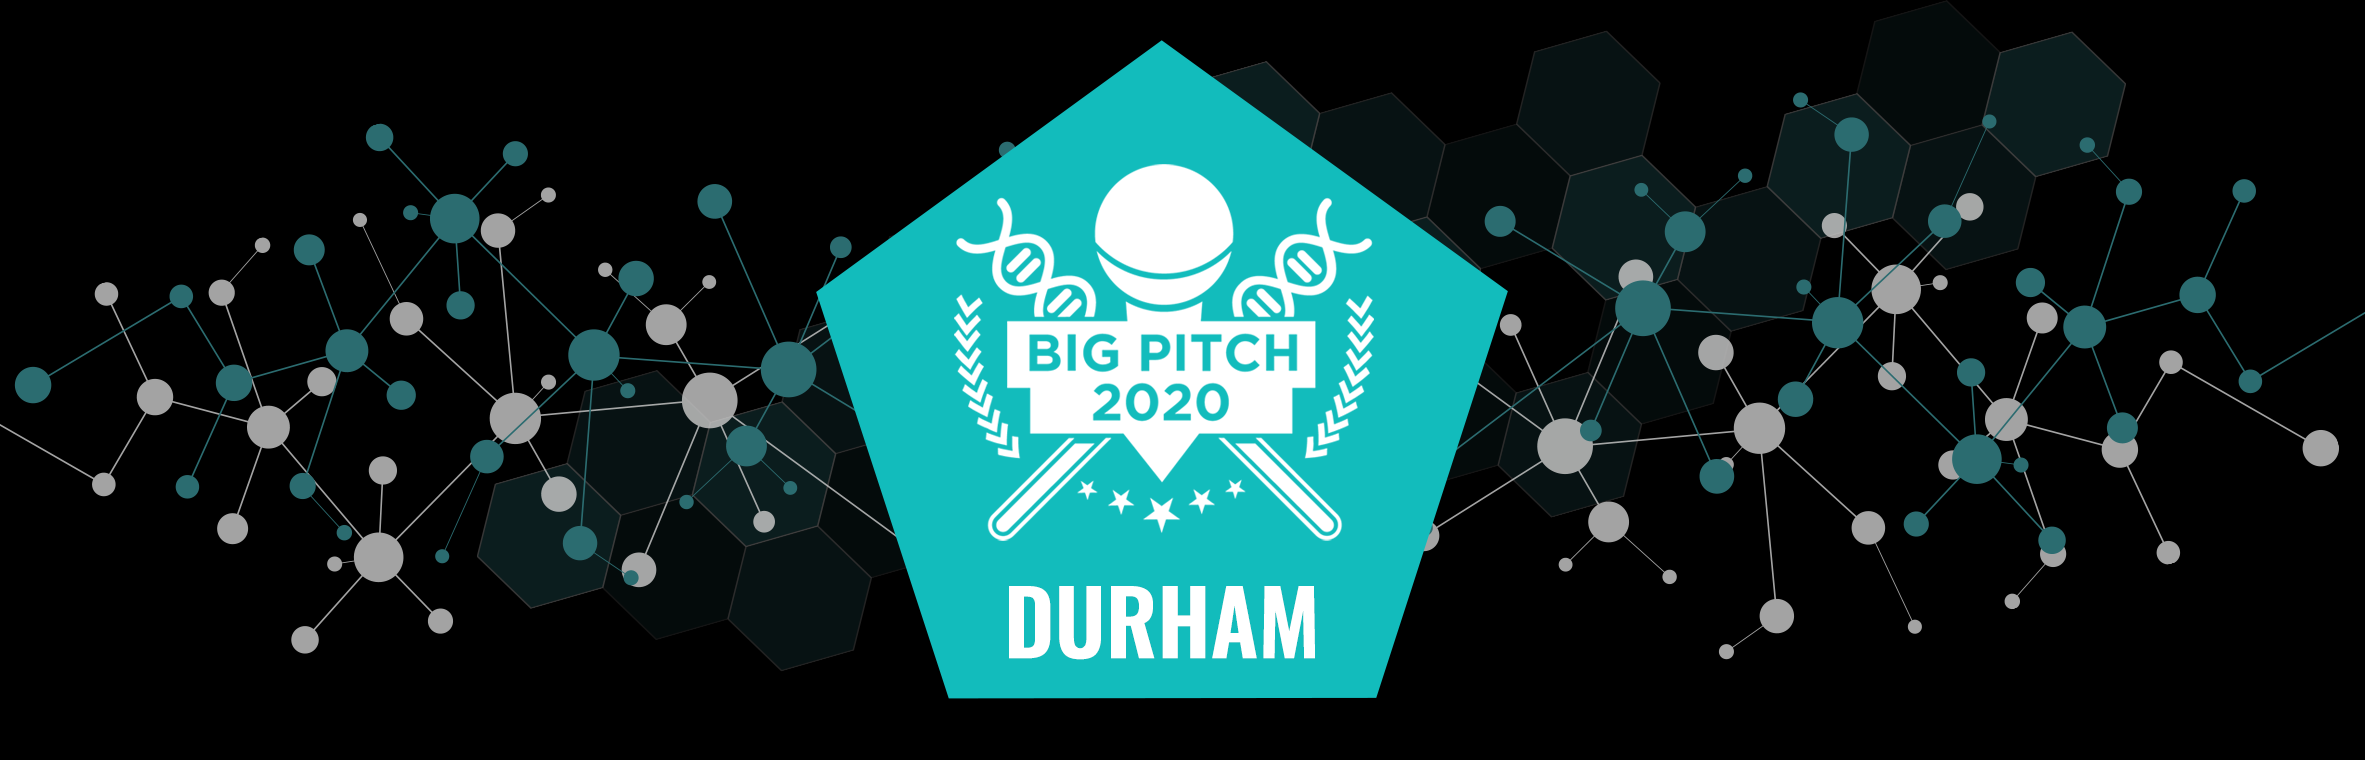 LaunchBio Big Pitch 2020 event graphic